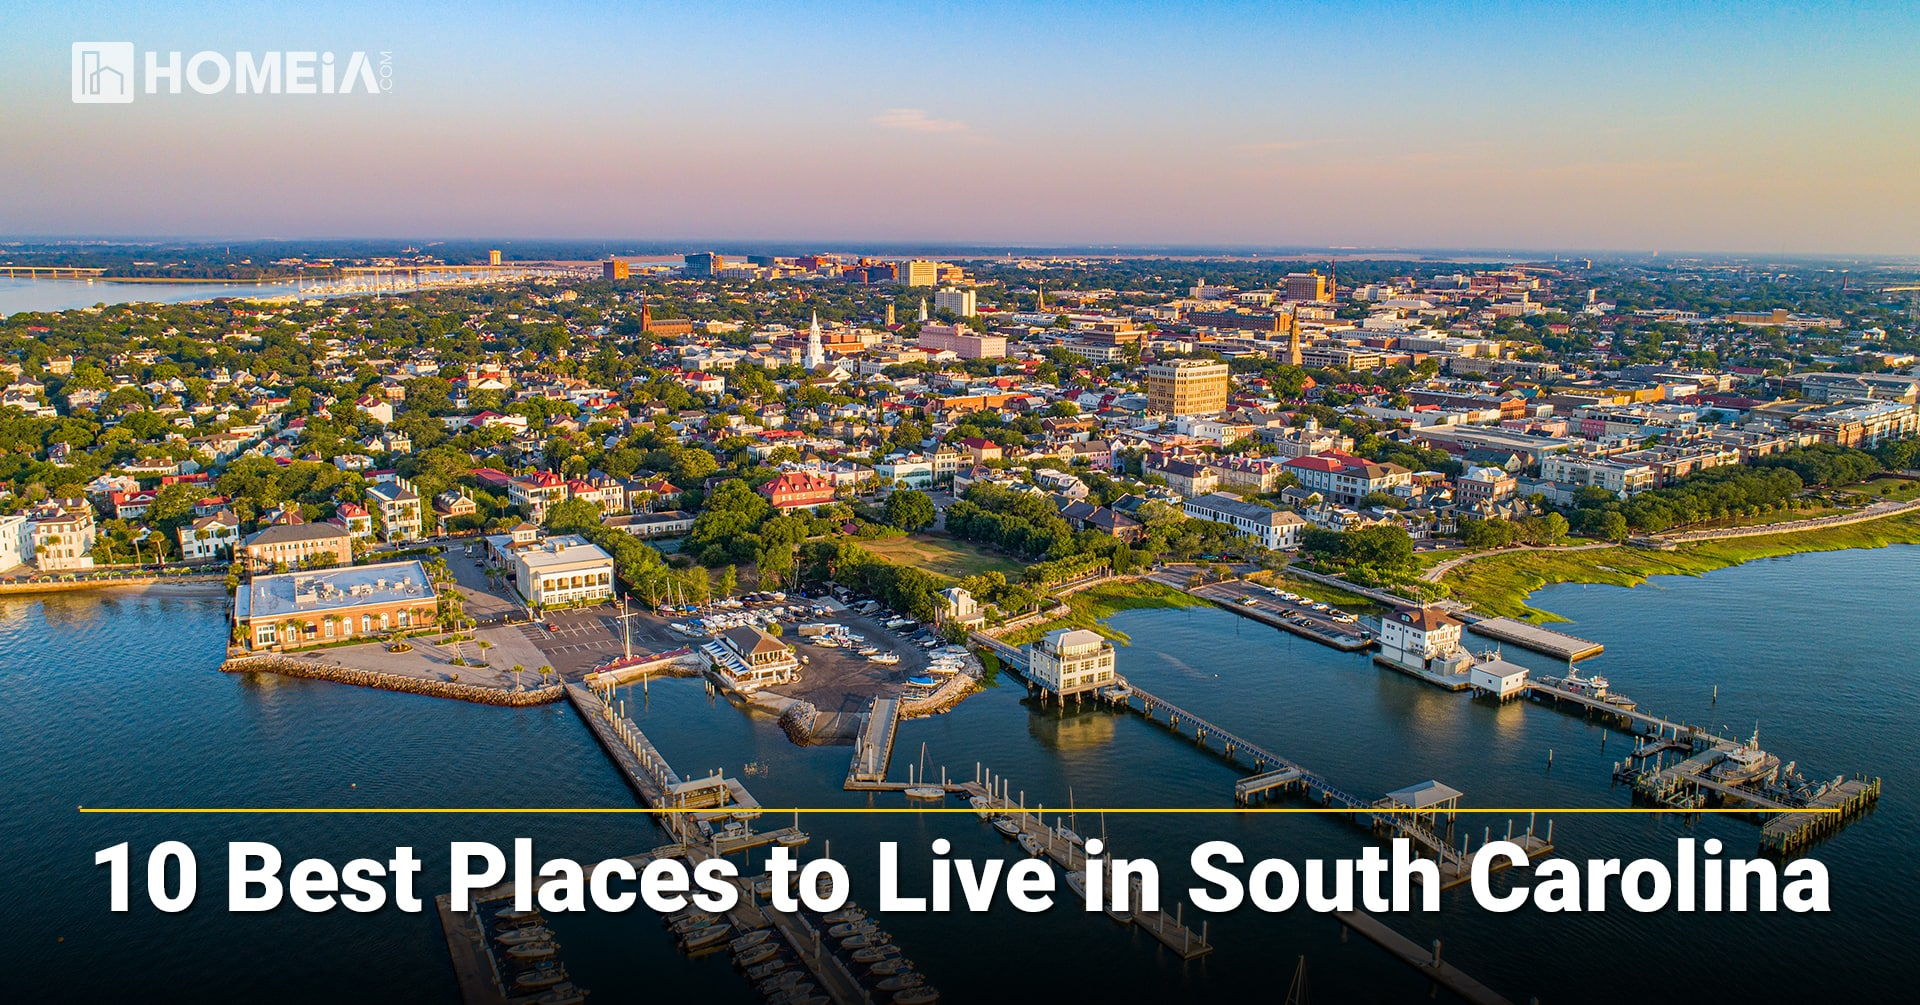 10 Best Places to Live in South Carolina 2021